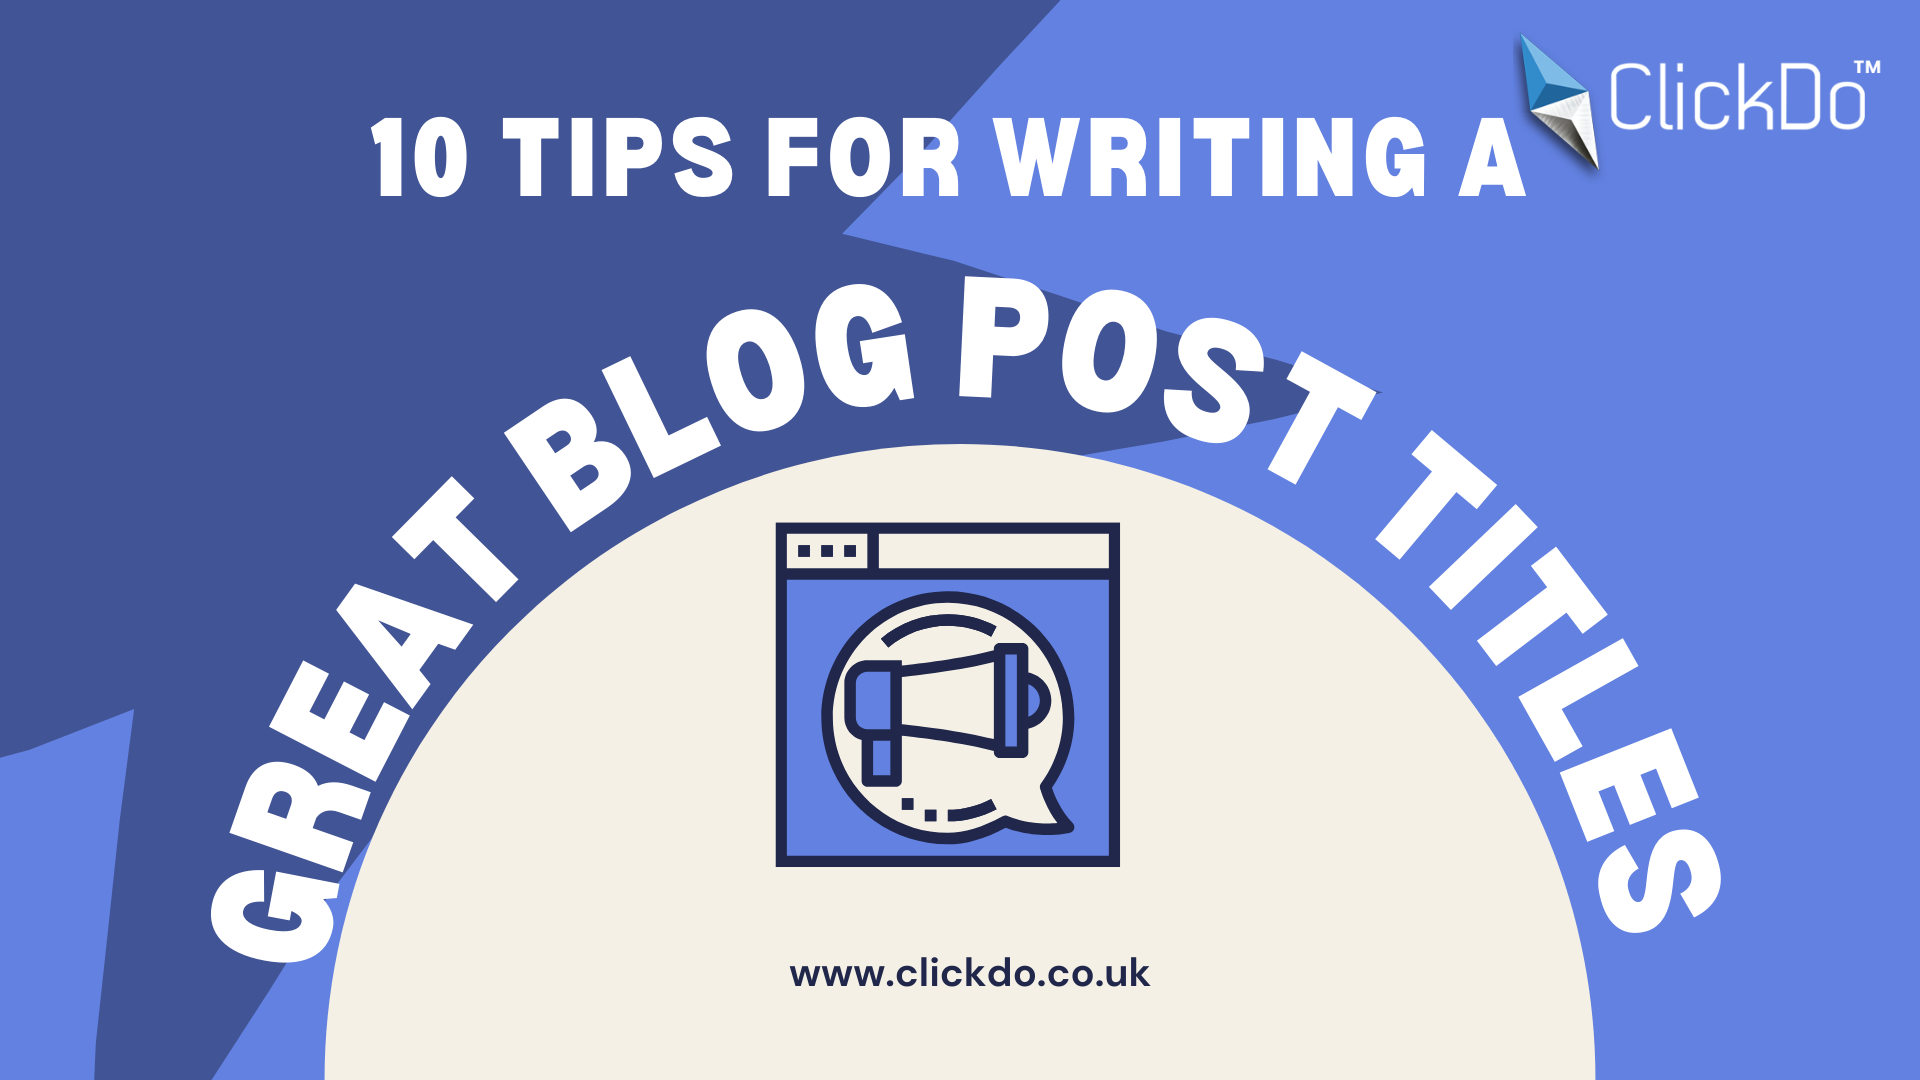 10 Tips for Writing a Great Blog Post Titles